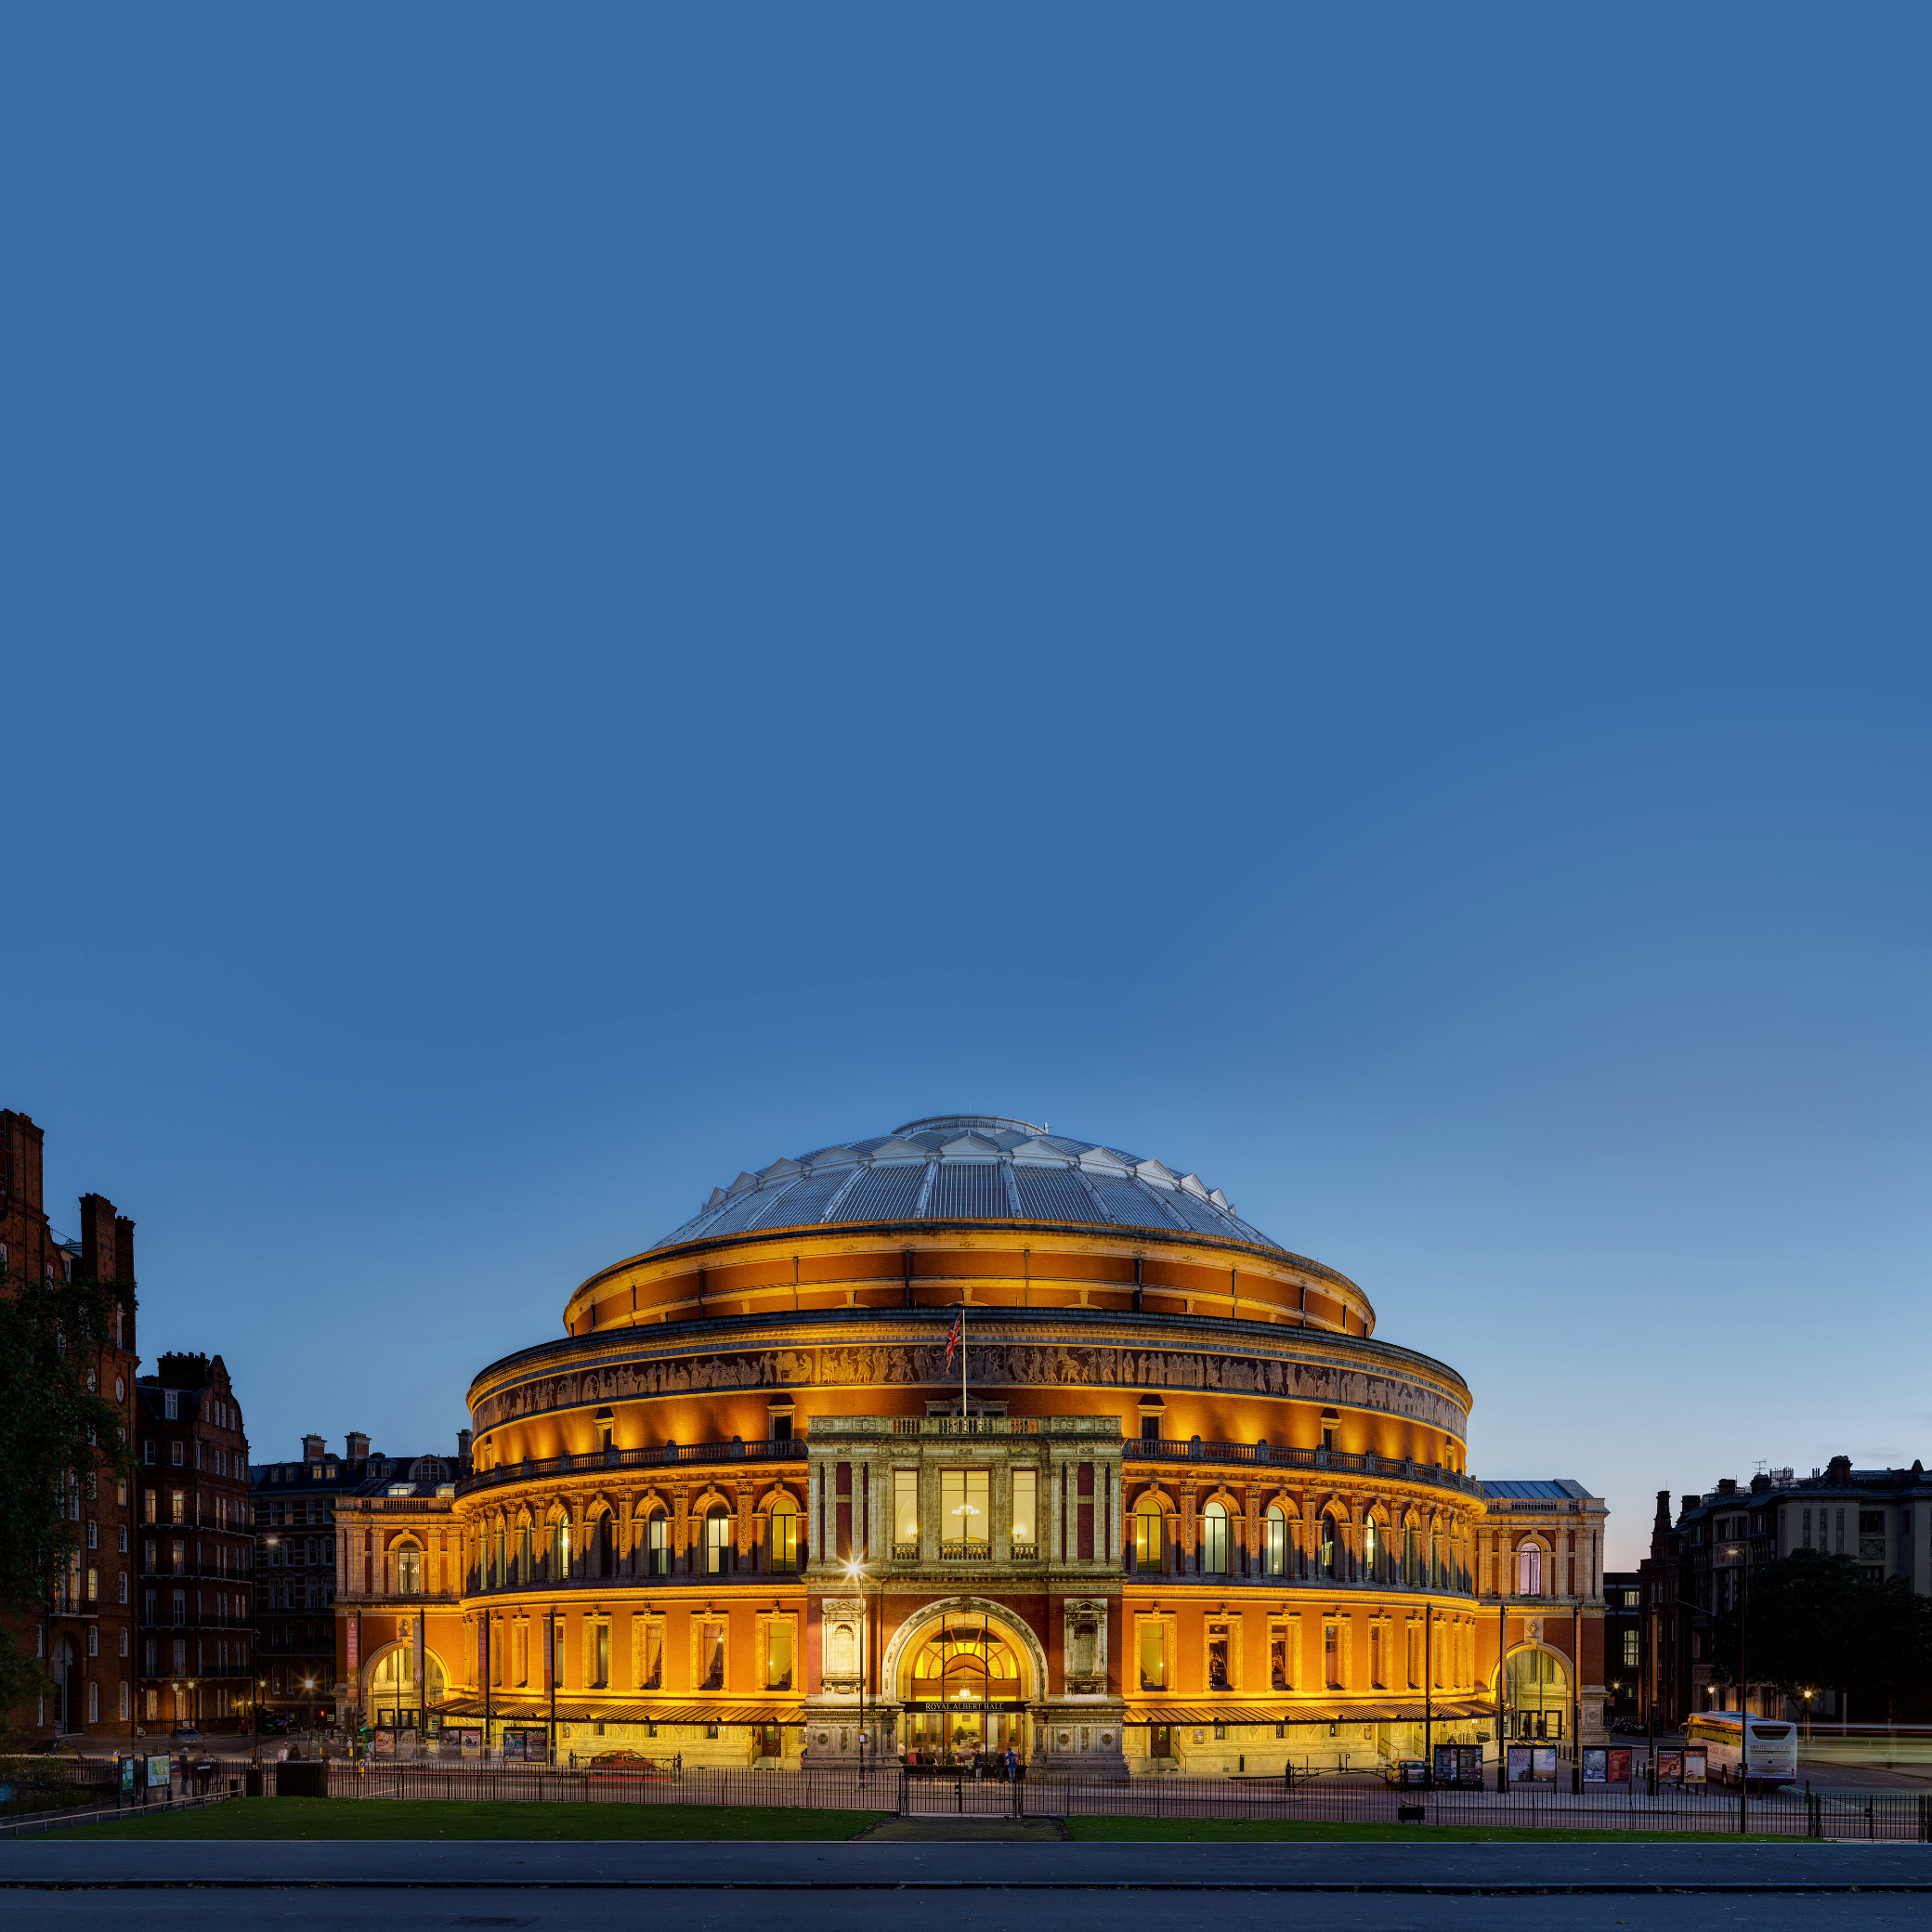 Royal albert hall for concert promotion